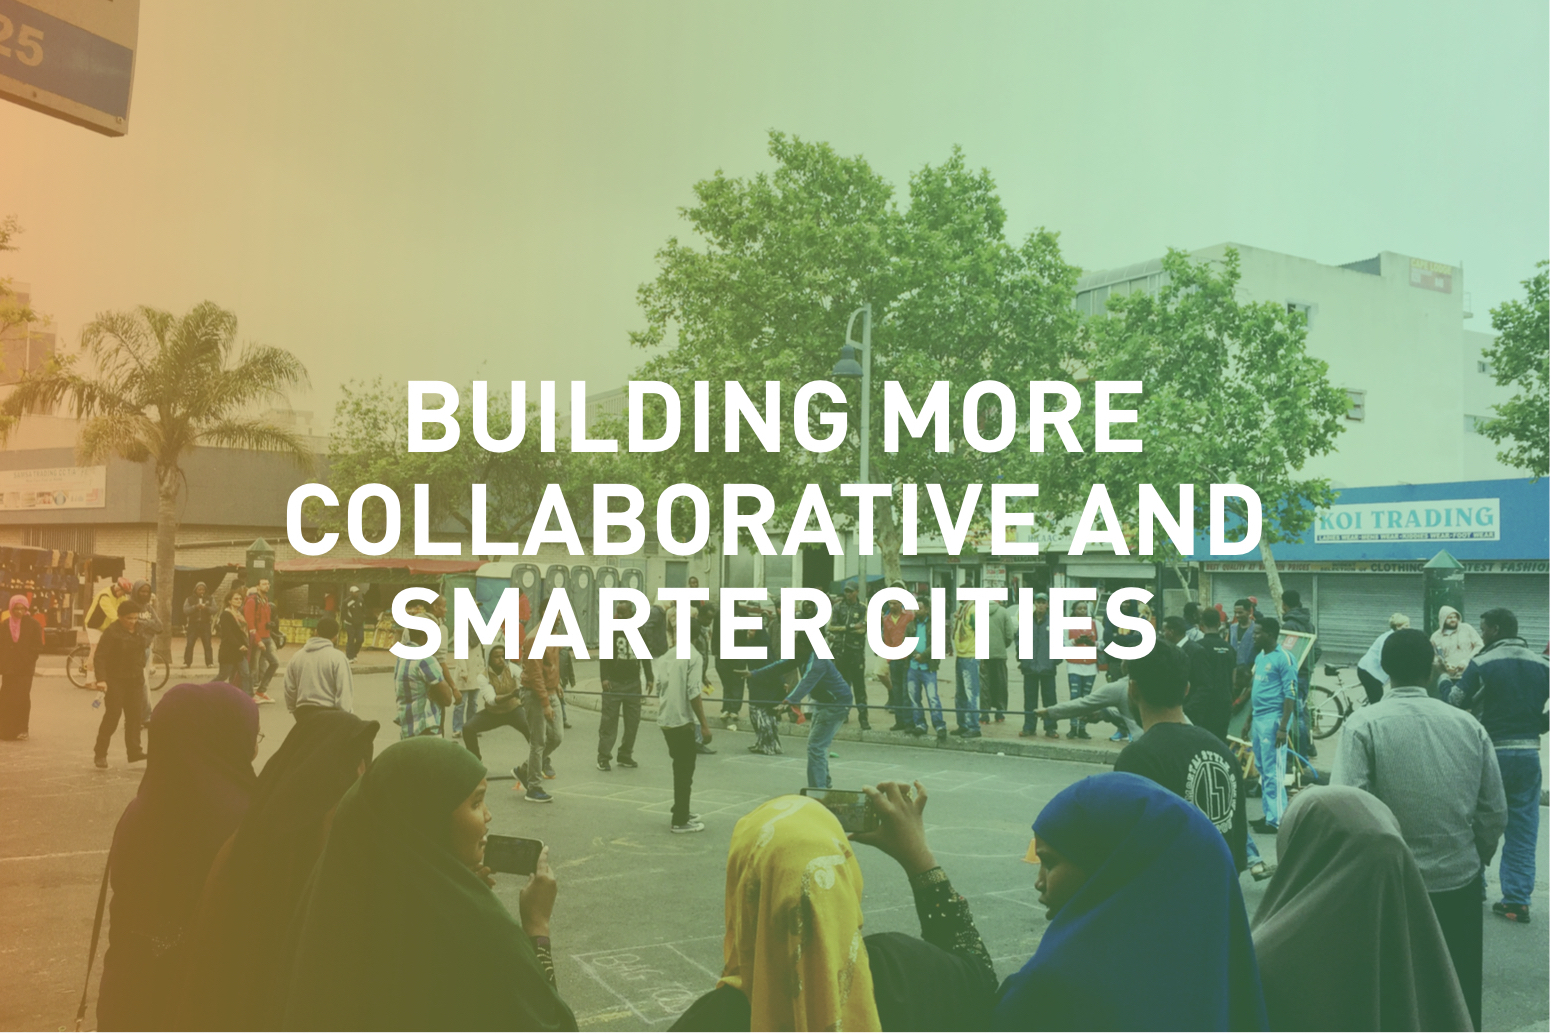 Breaking barriers between nations, cities, sectors and disciplines through collaboration and smarter partnerships.